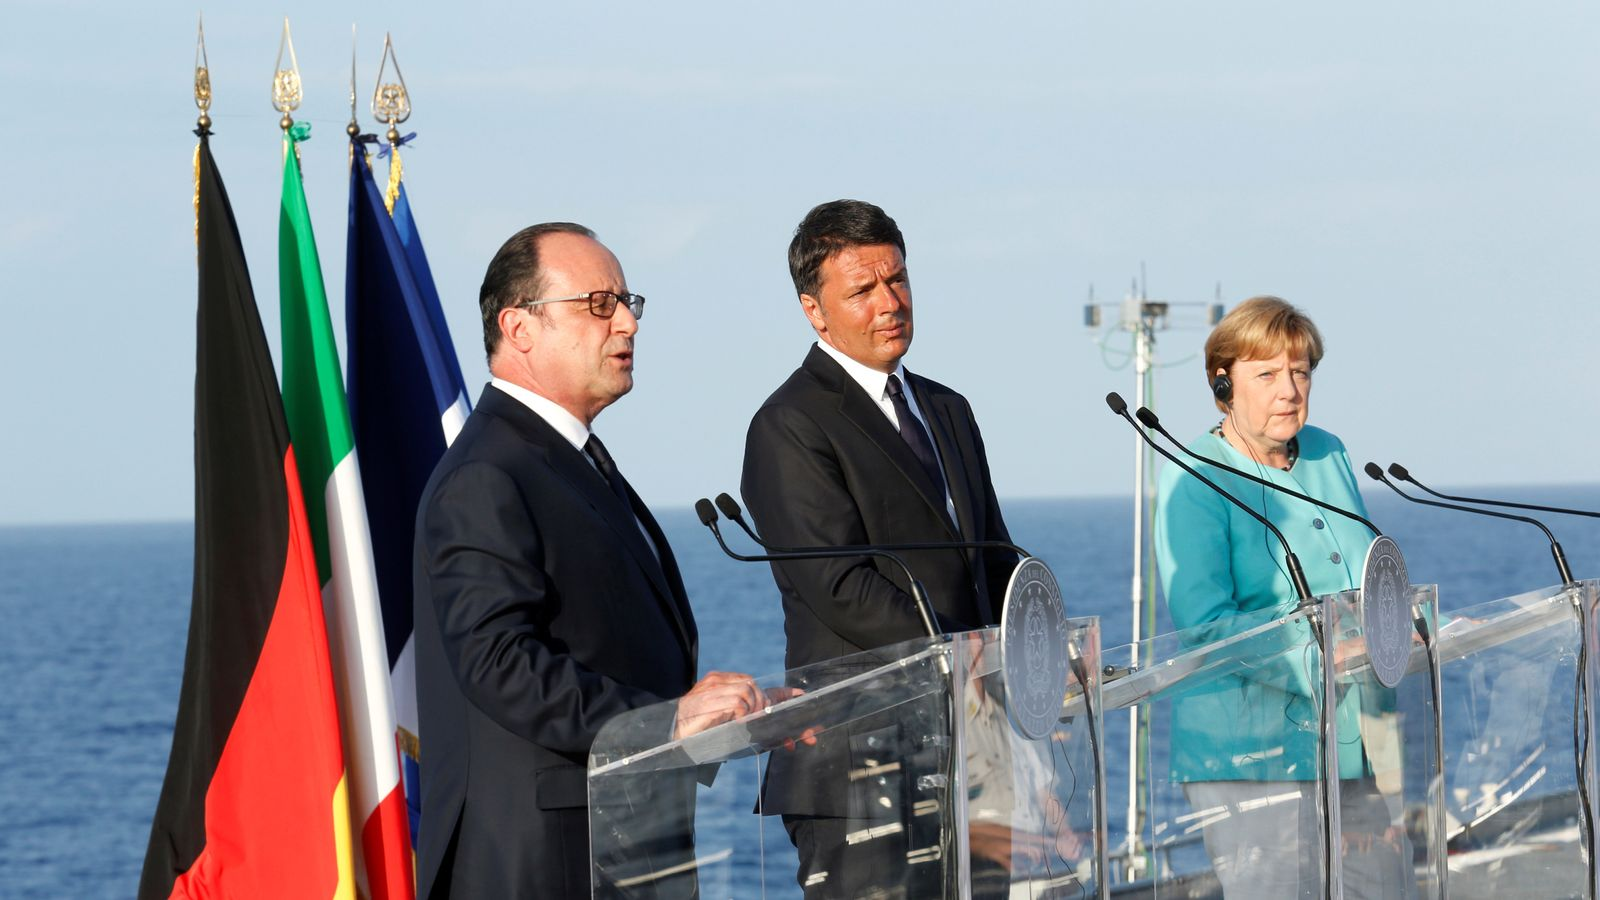 Francois Hollande, Matteo Renzi and Angela Merkel